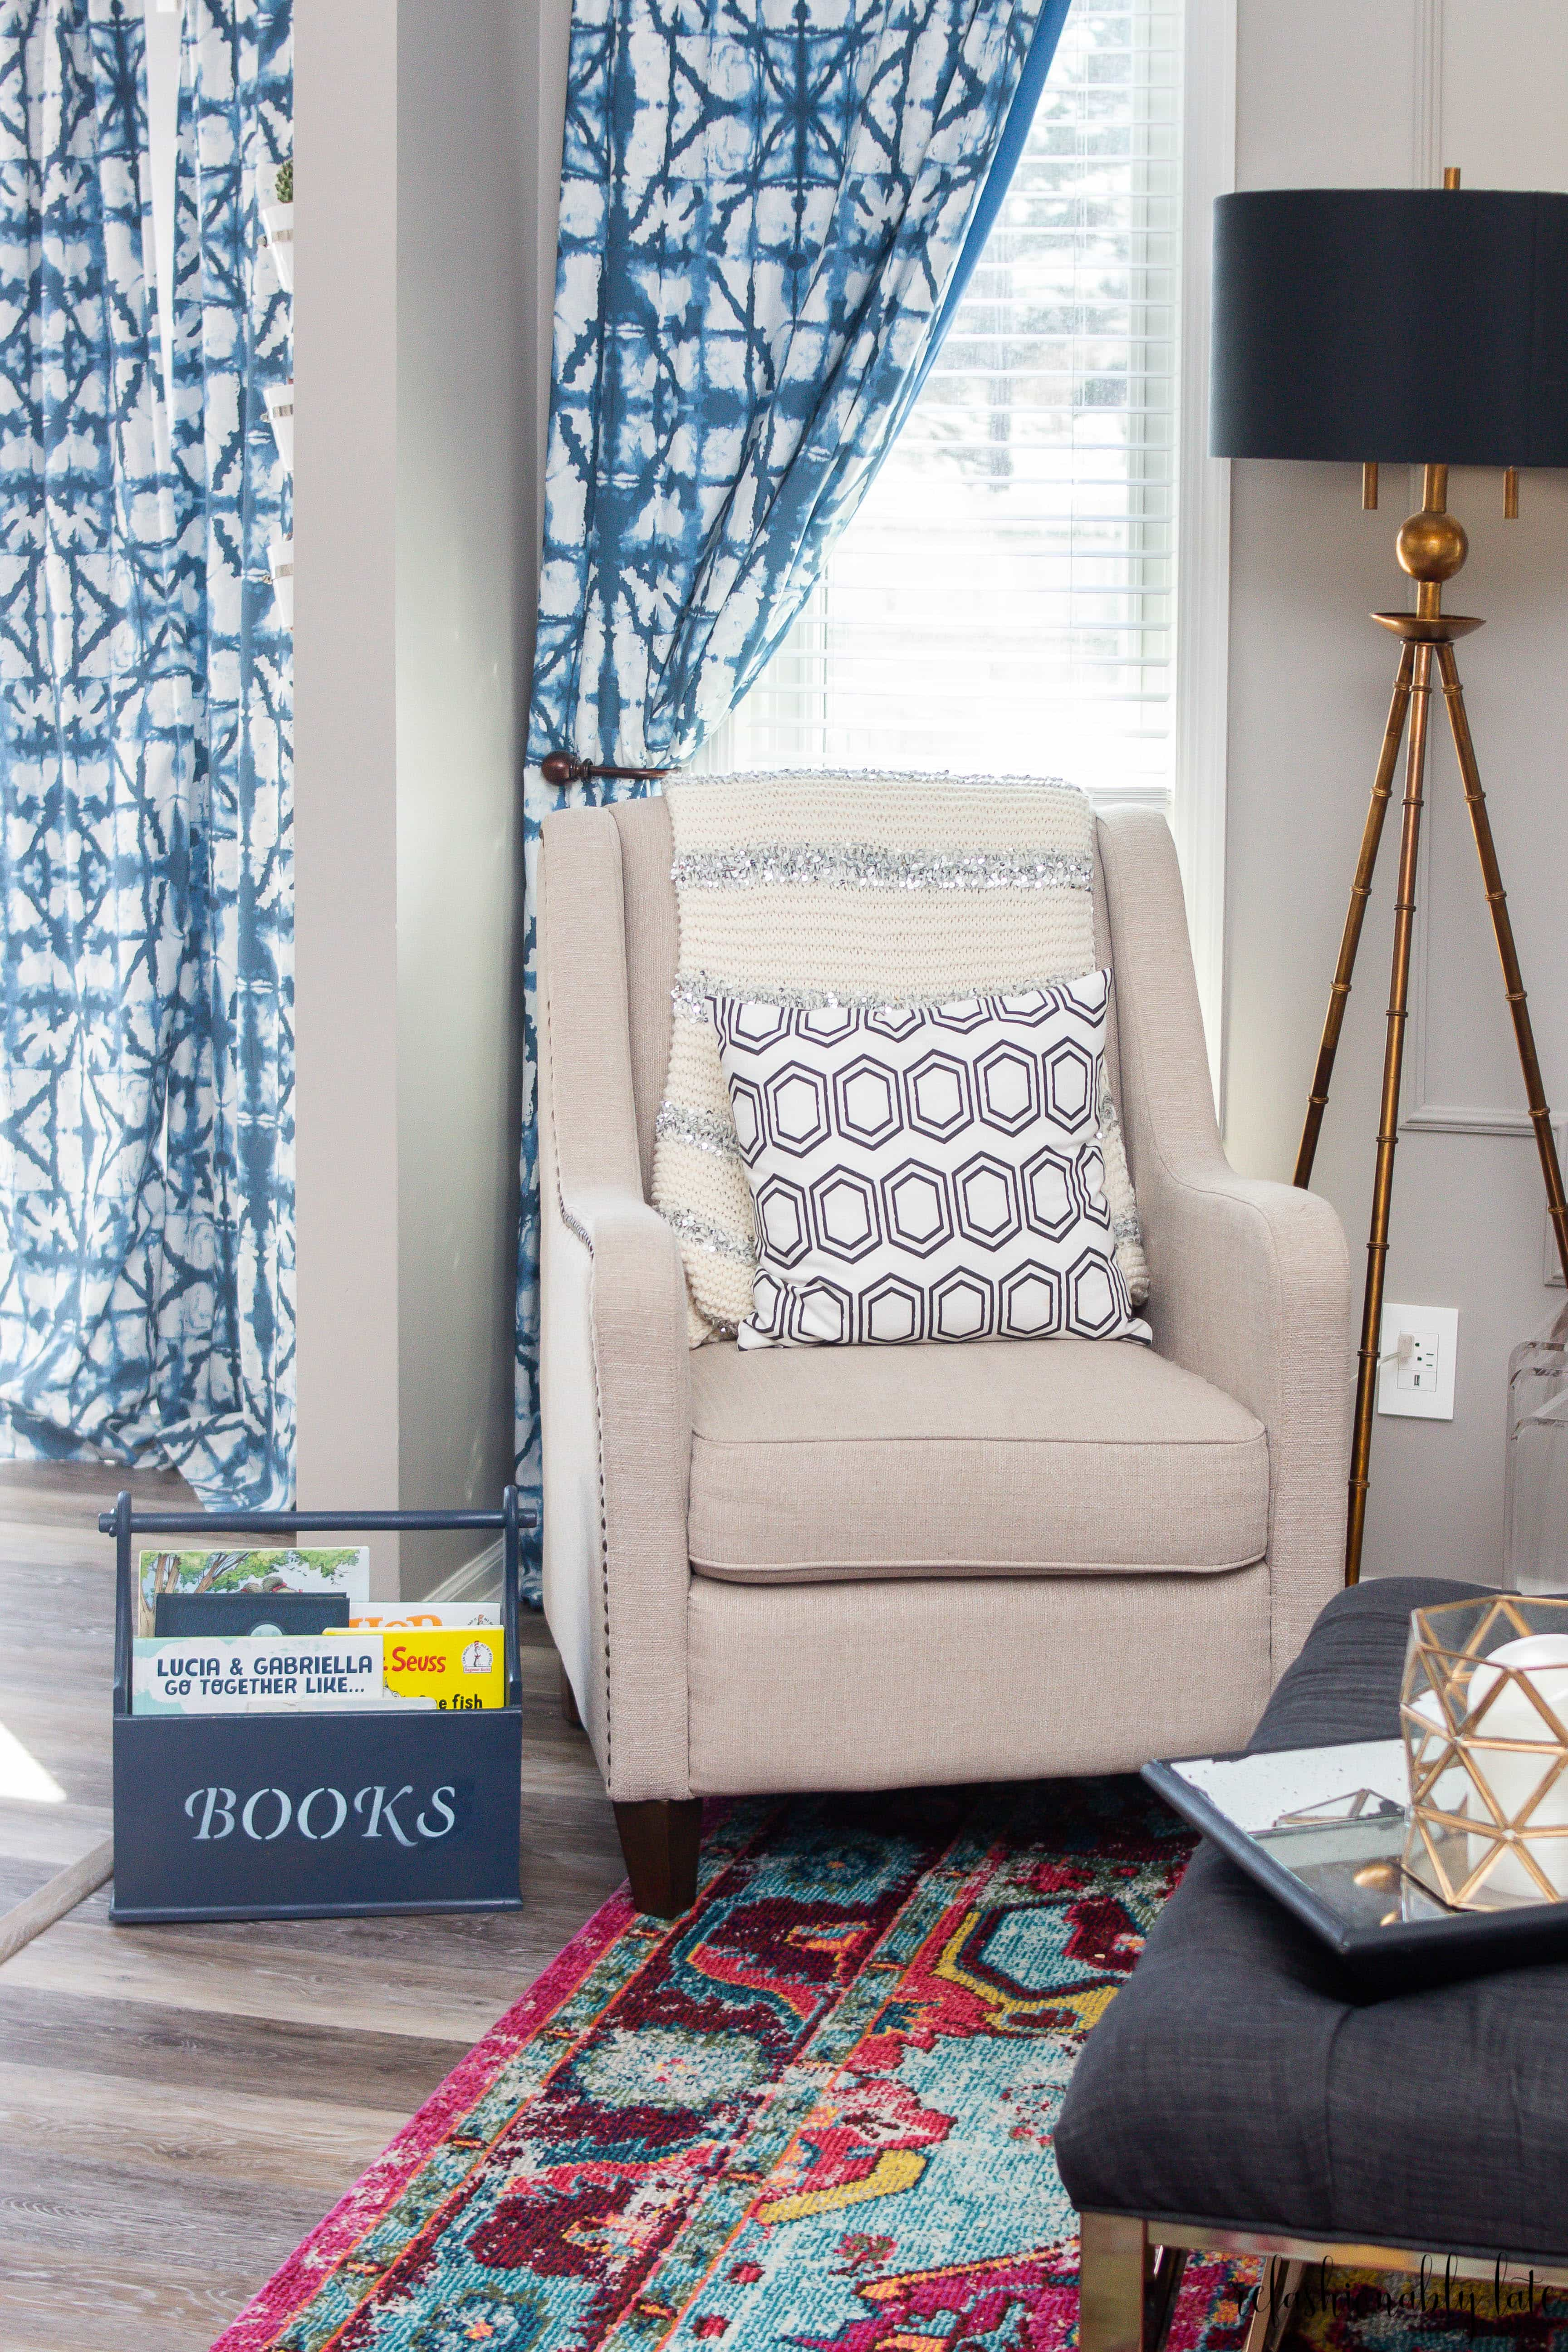 blue book storage in living room with tan chair and shibori curtains